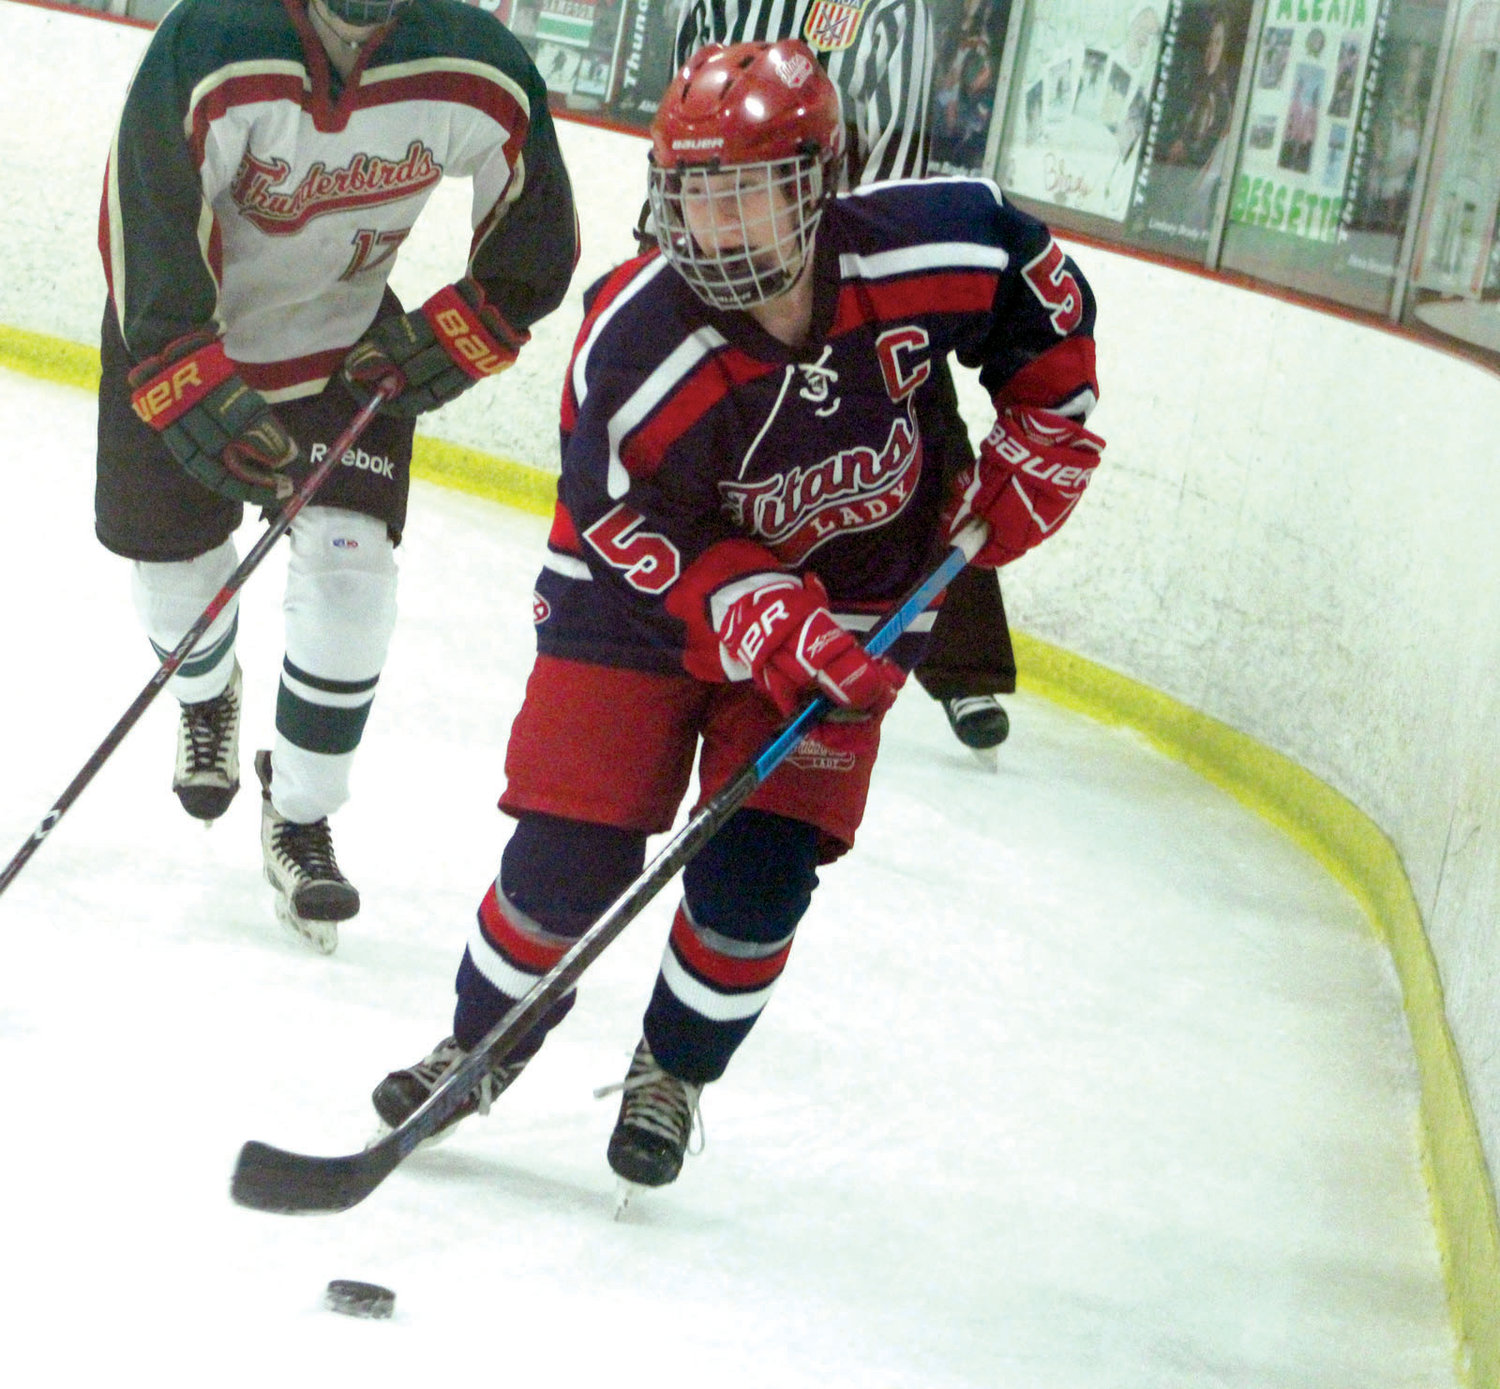 AROUND THE NET: Warwick's Nicole Procaccini carries the puck behind the net.